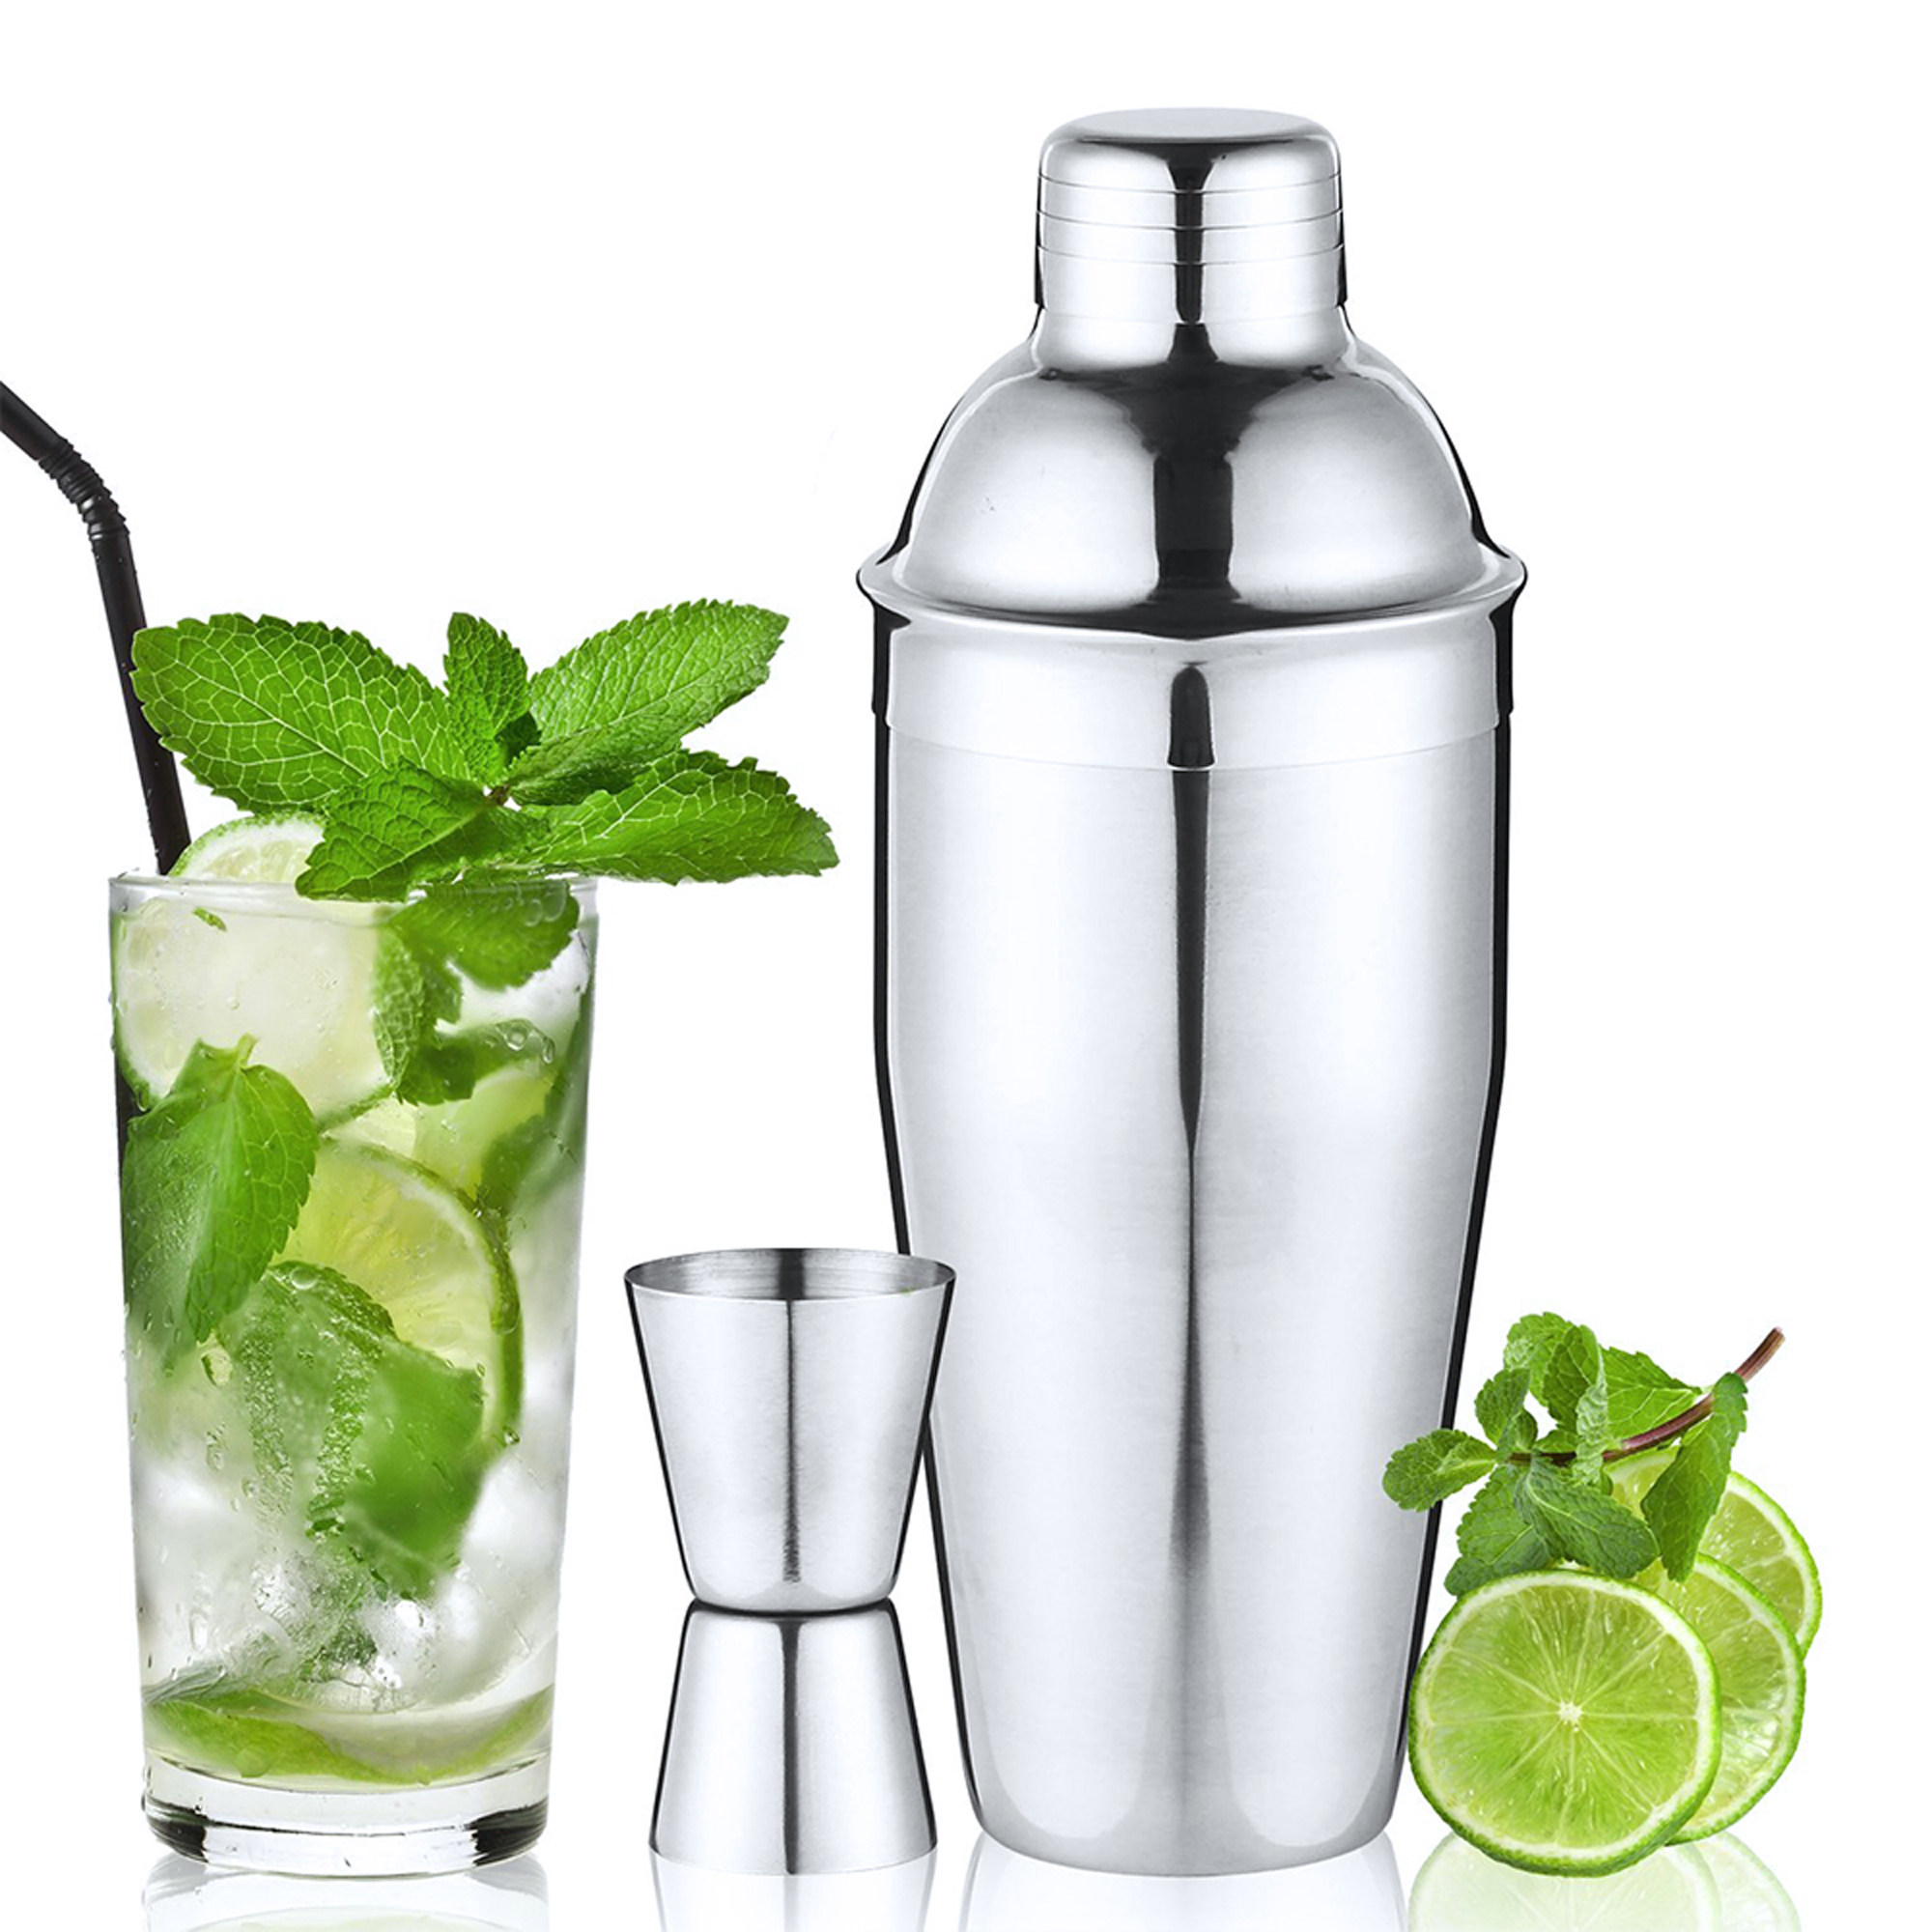 25Oz/750ML Cocktail Shaker Set 18/8 Premium Stainless Steel 3PCS Bundle w/ Jigger and Built-In Strainer Mixer